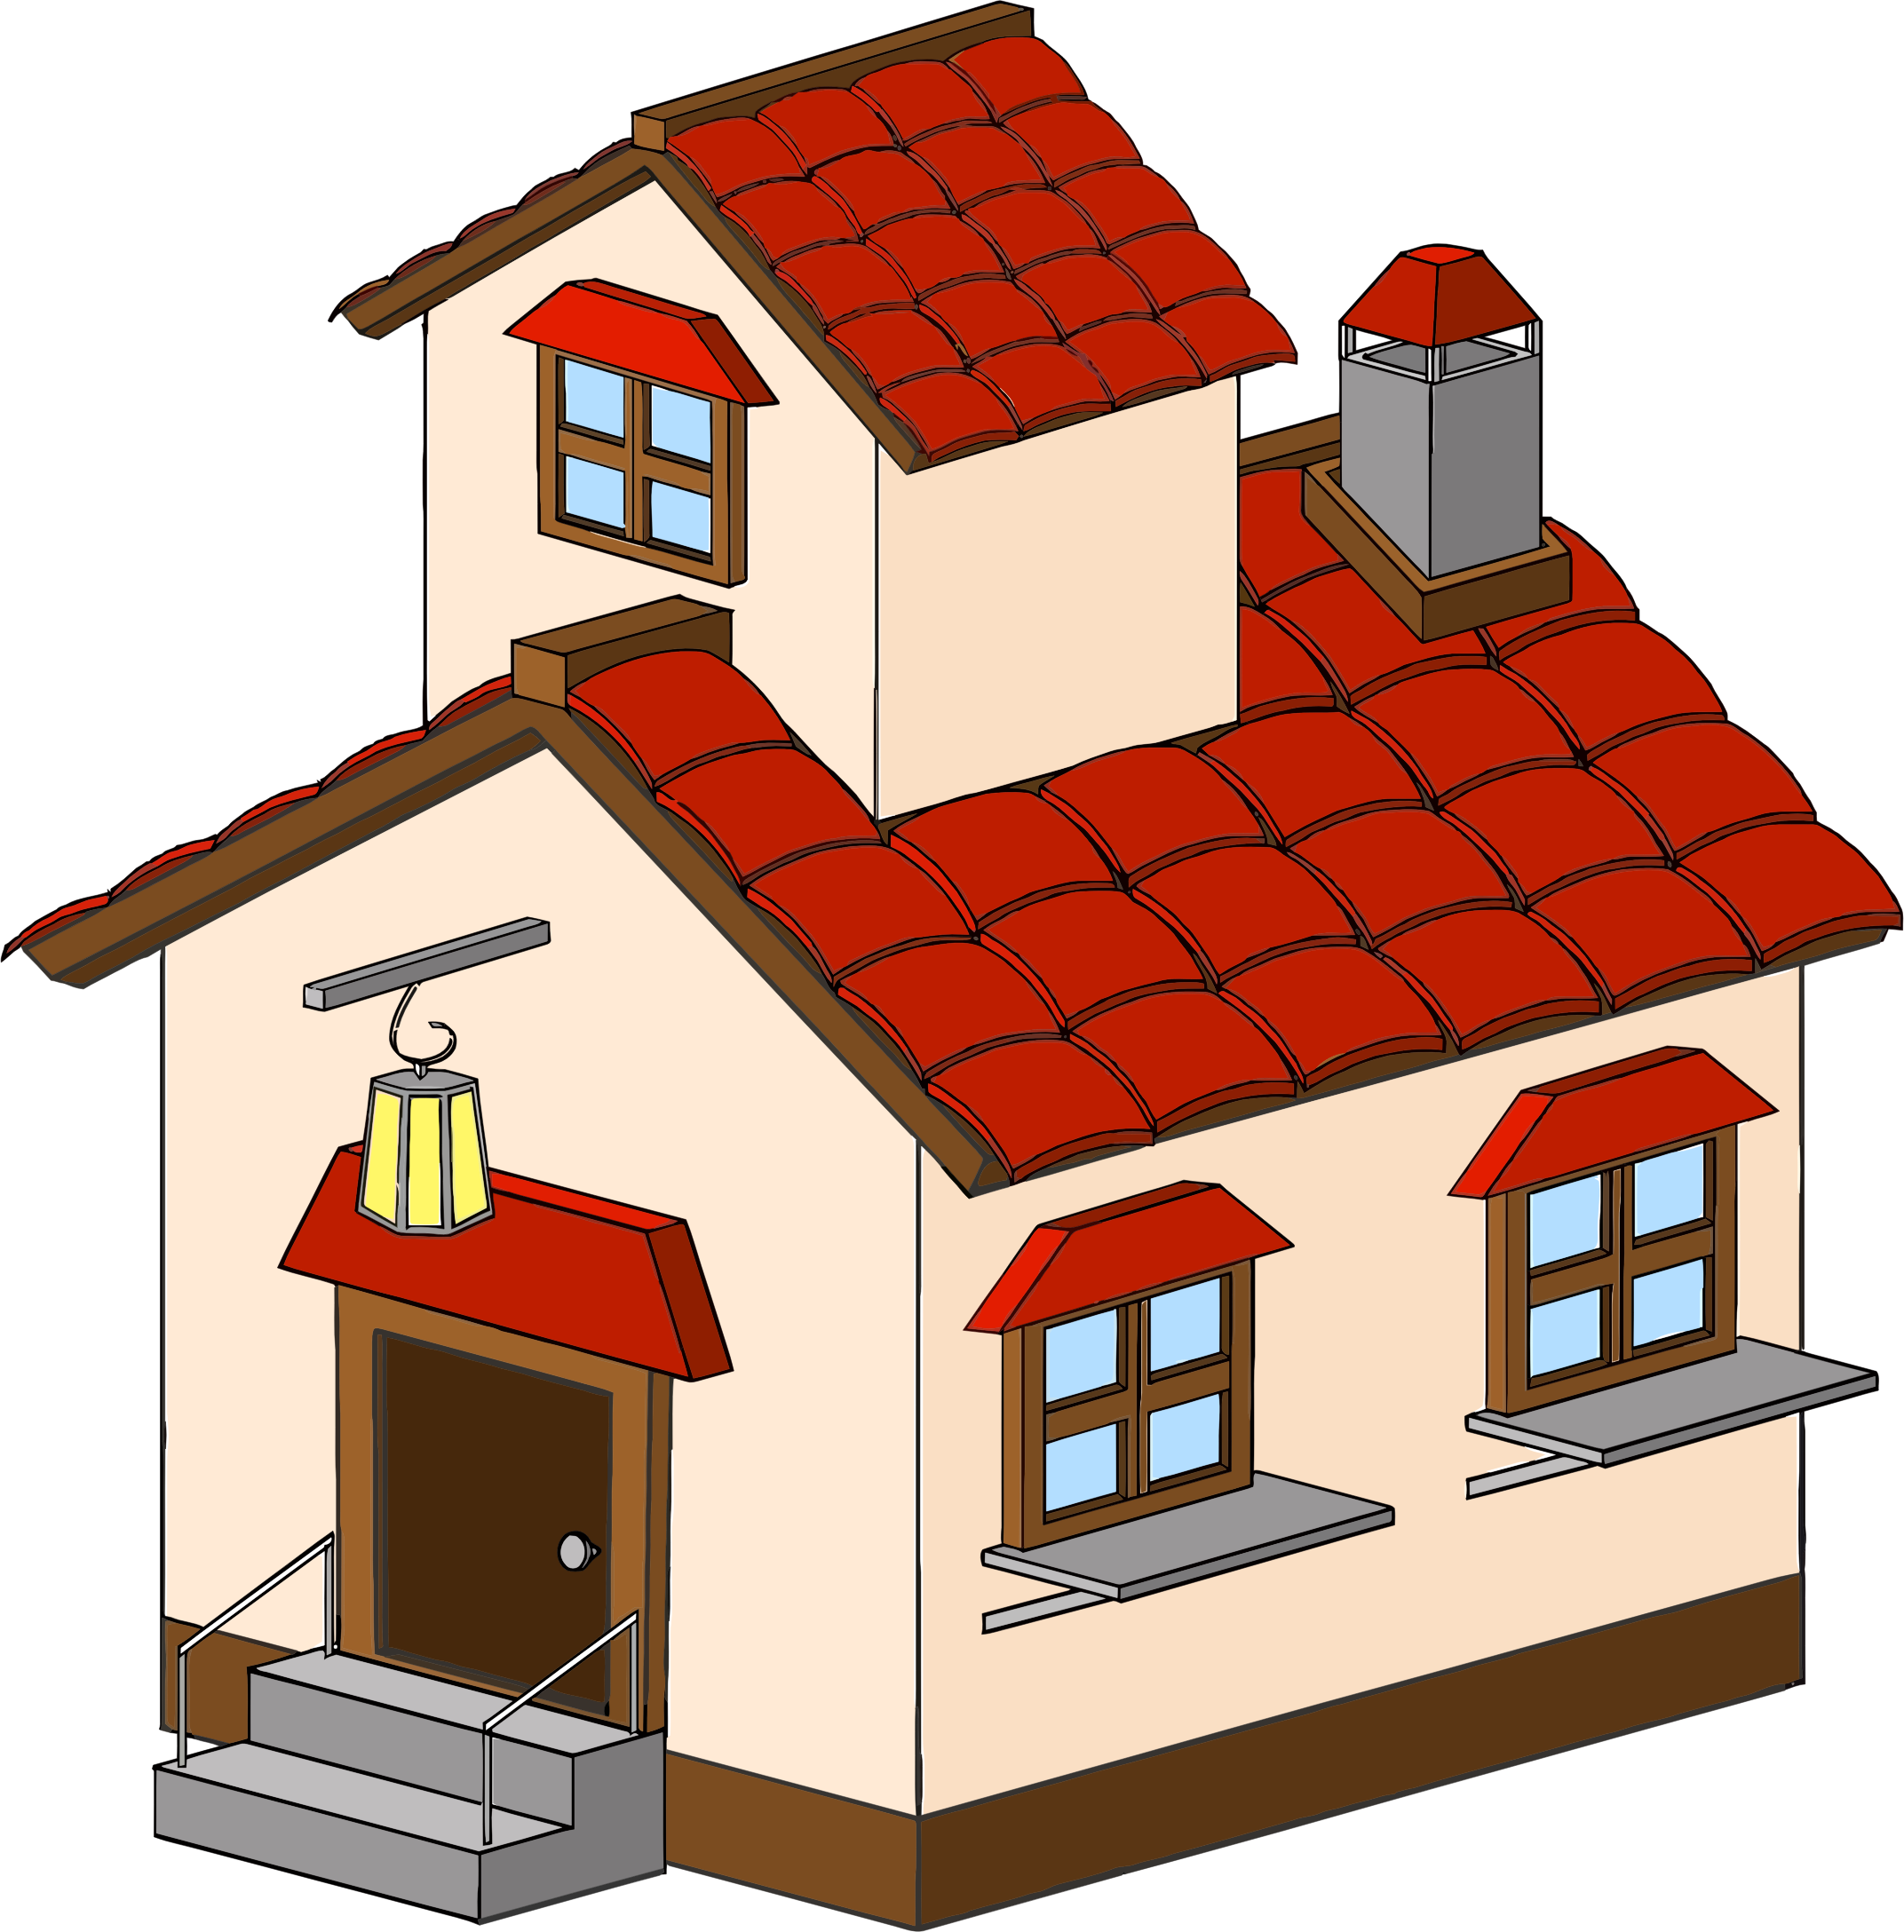 Cartoon Haunted House ClipArt Picture image #45382